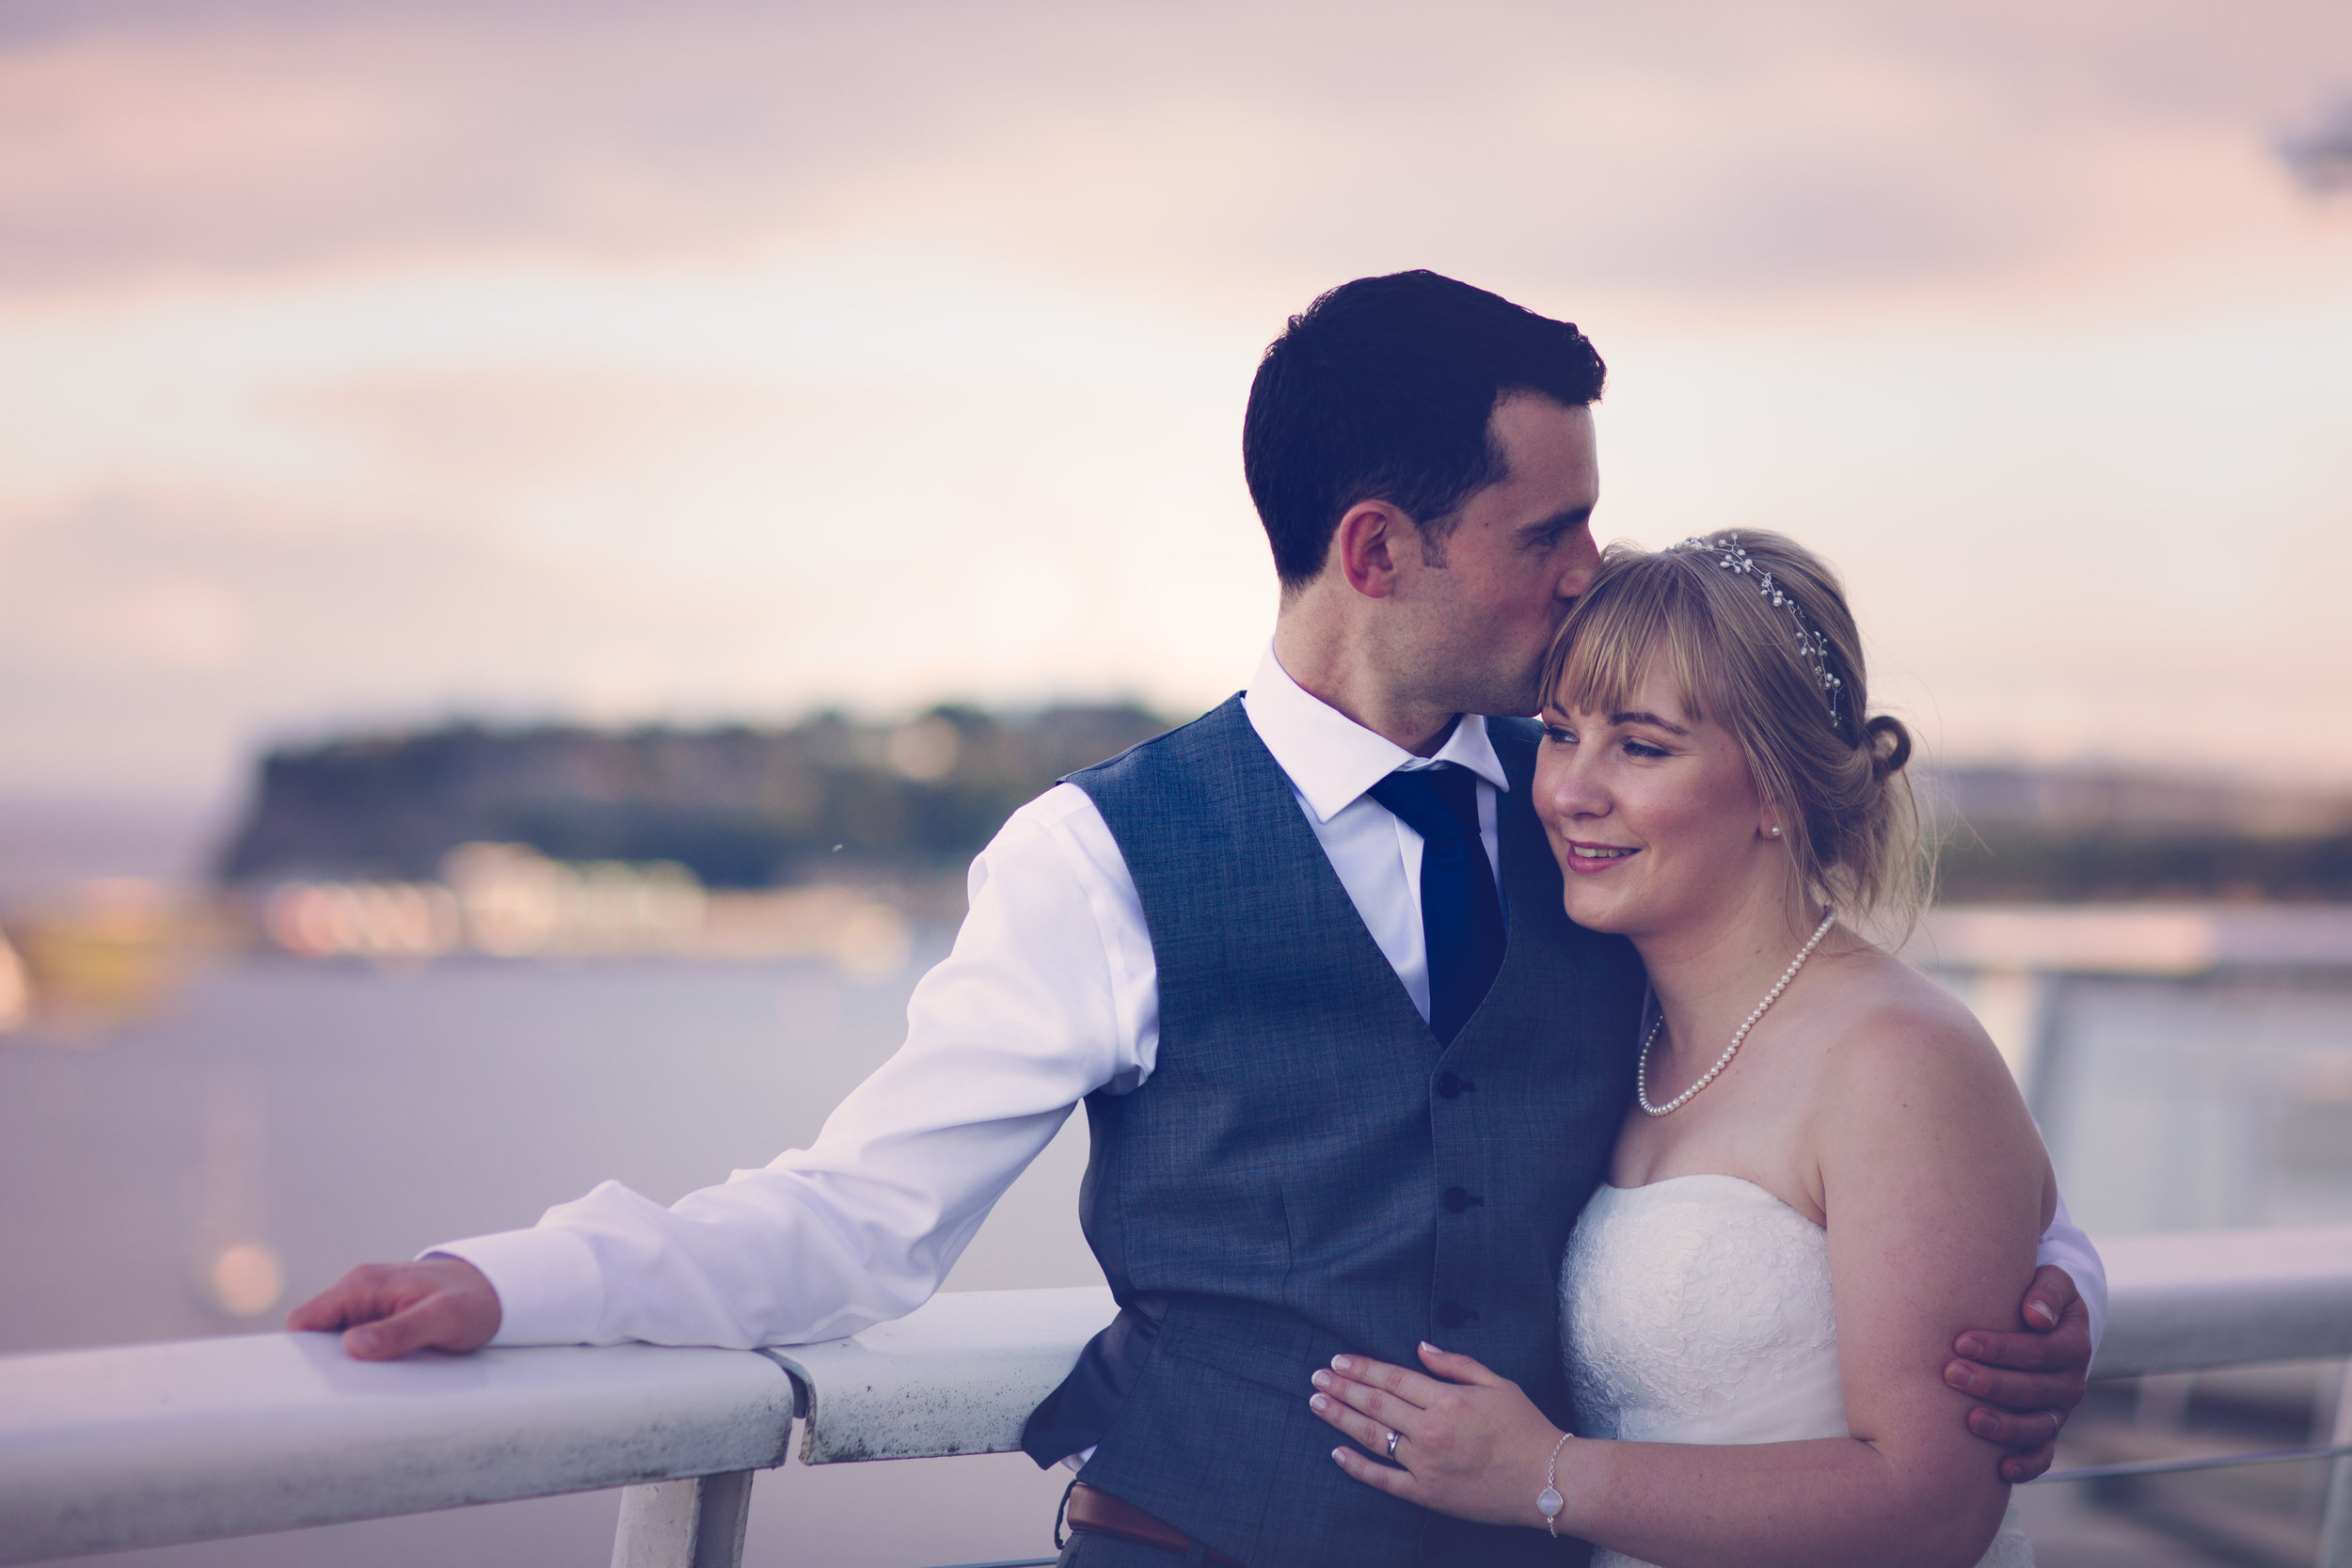 Mark_Barnes_South_Wales_Wedding_photographer_Cardiff_St_Davids_Hotel_wedding_photography_Mark_and_Abi-For_Print-303.jpg